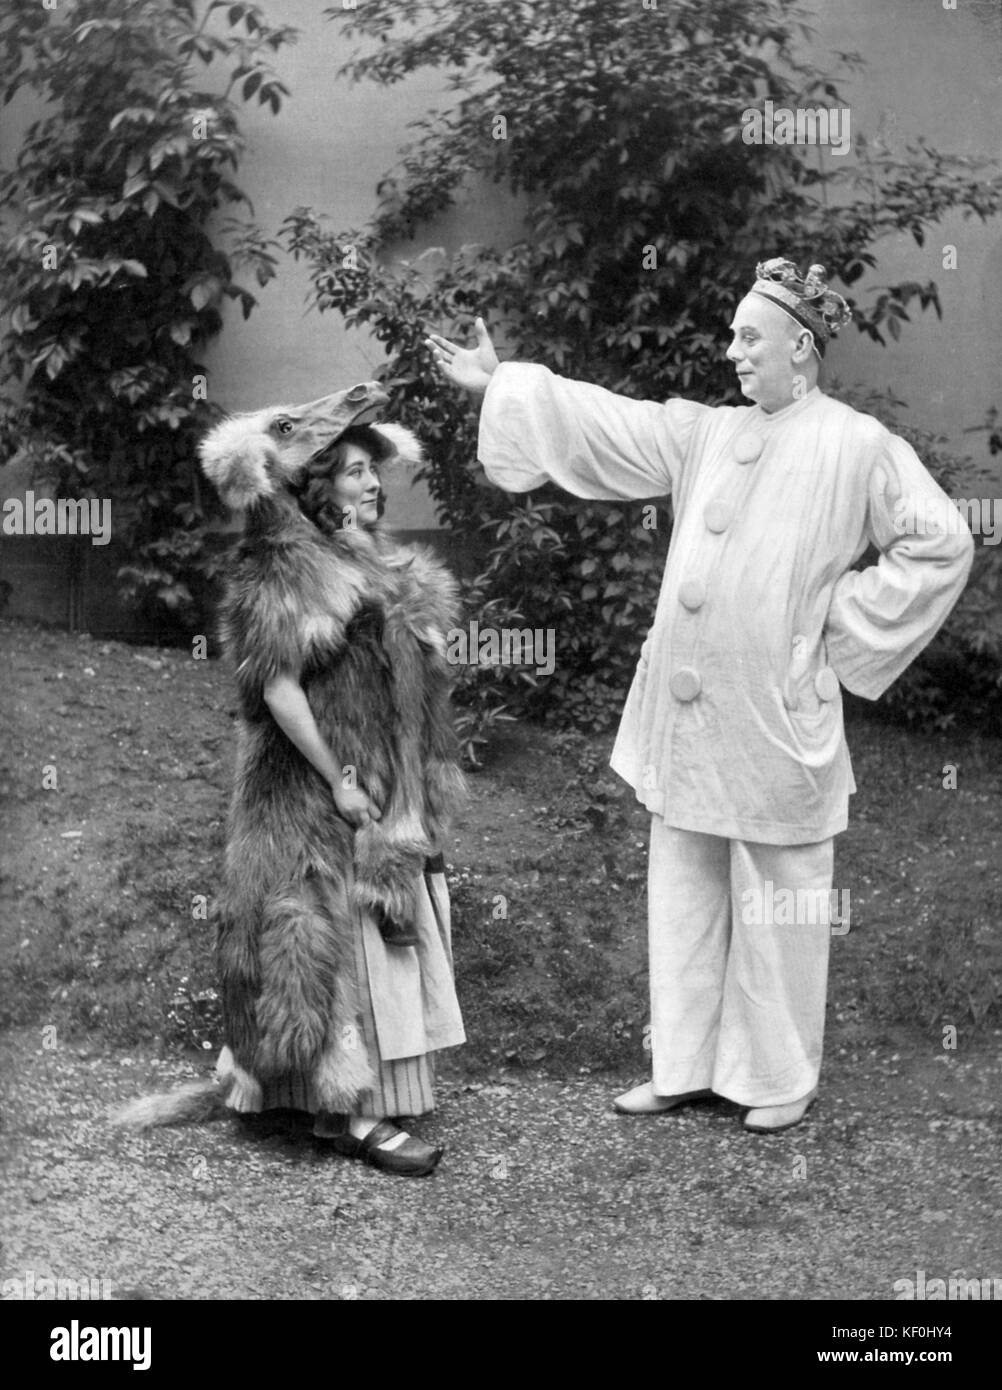 Chr. Mendelys as La Gardeuse D'Oie and Raoul de Najac as King Pierrot in ' Peau D'Ane ' (Donkey - Stock Image